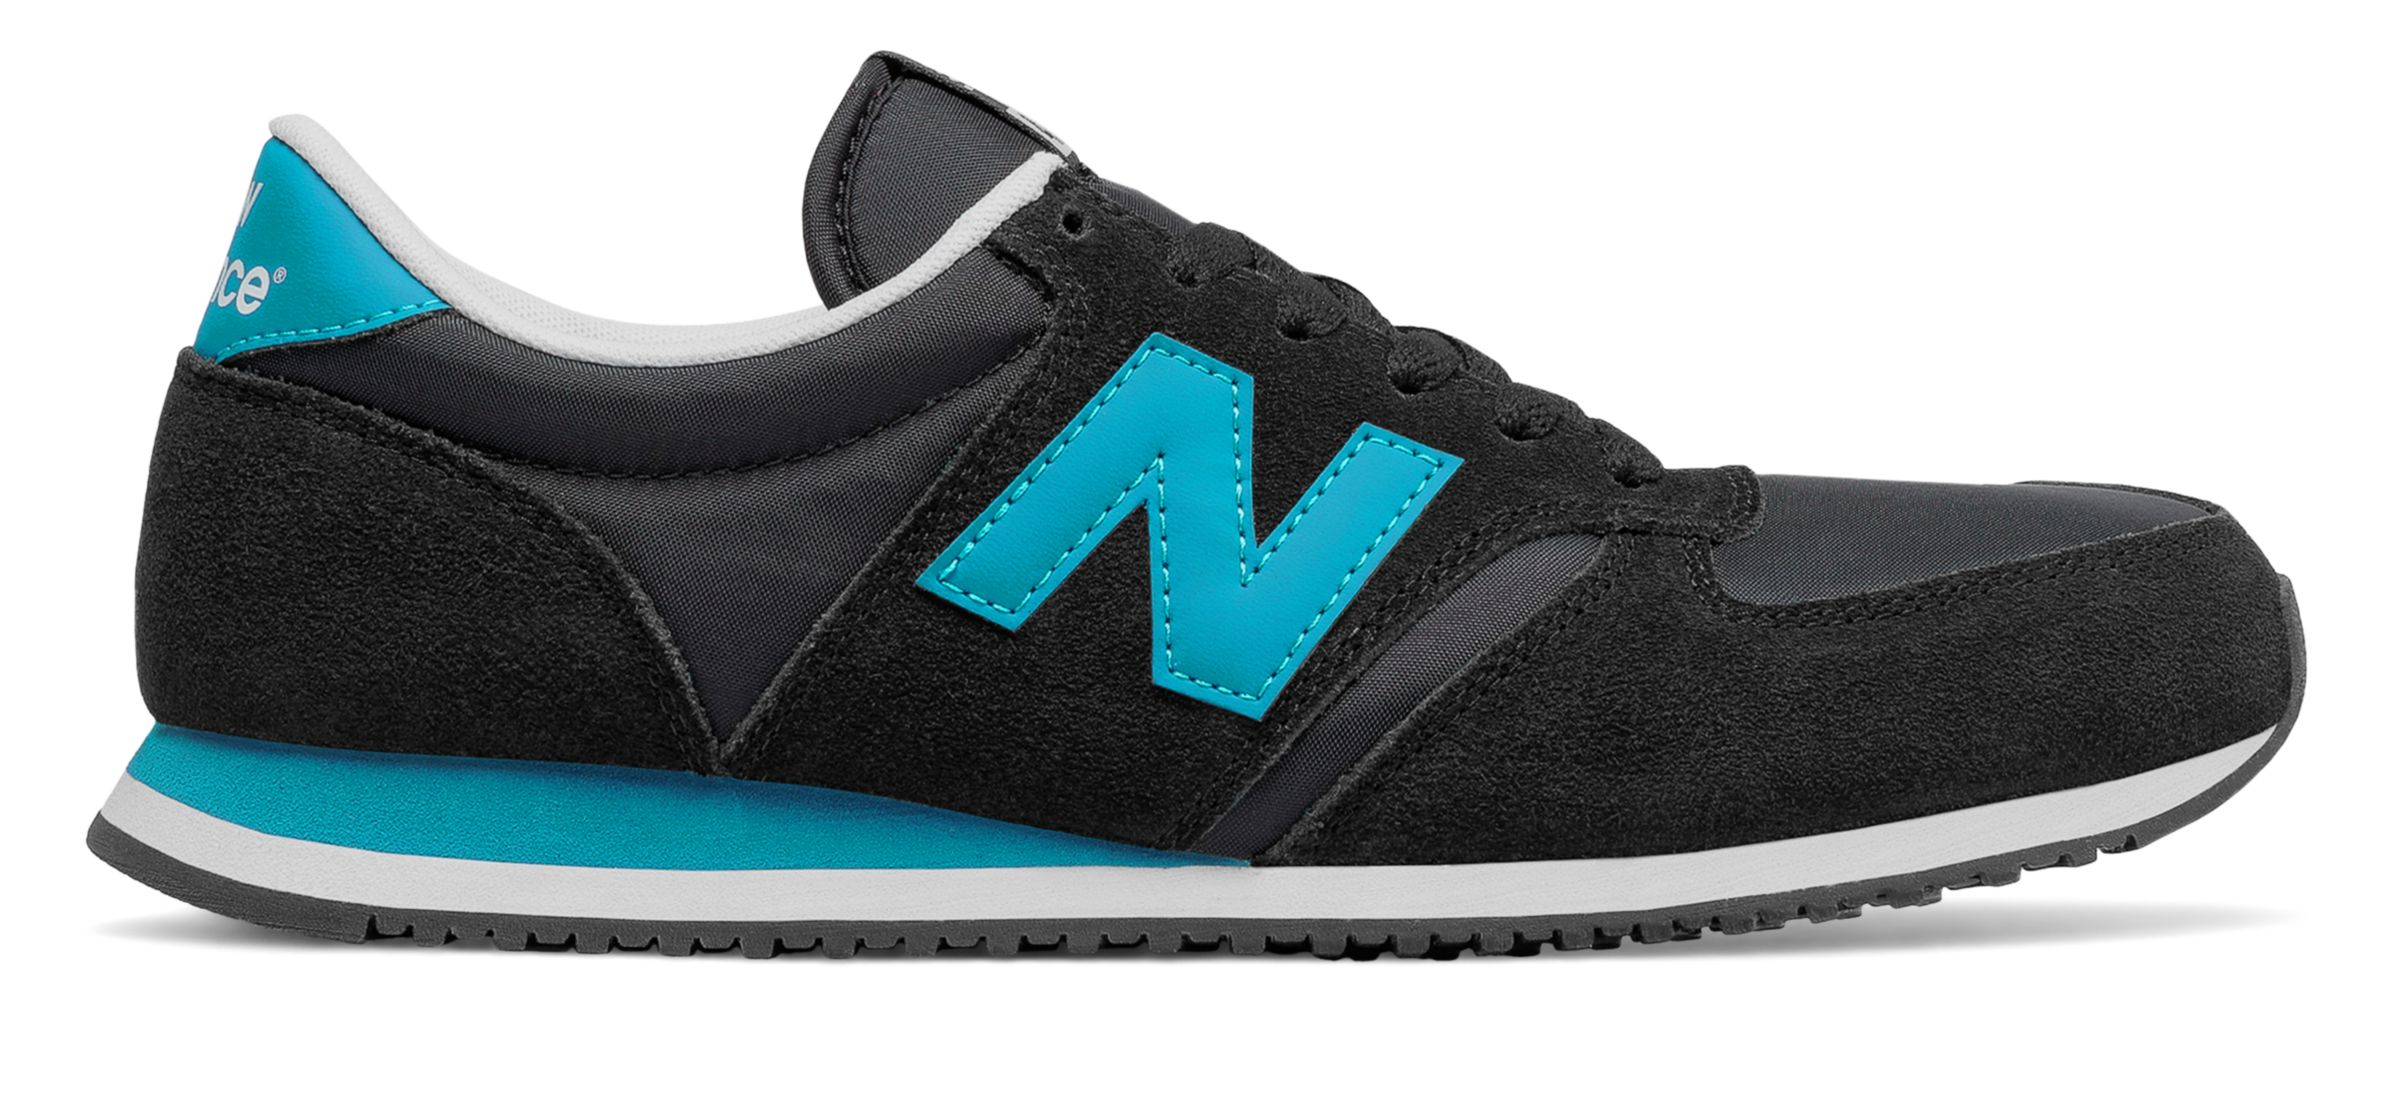 NB New Balance 420, Black with Navy